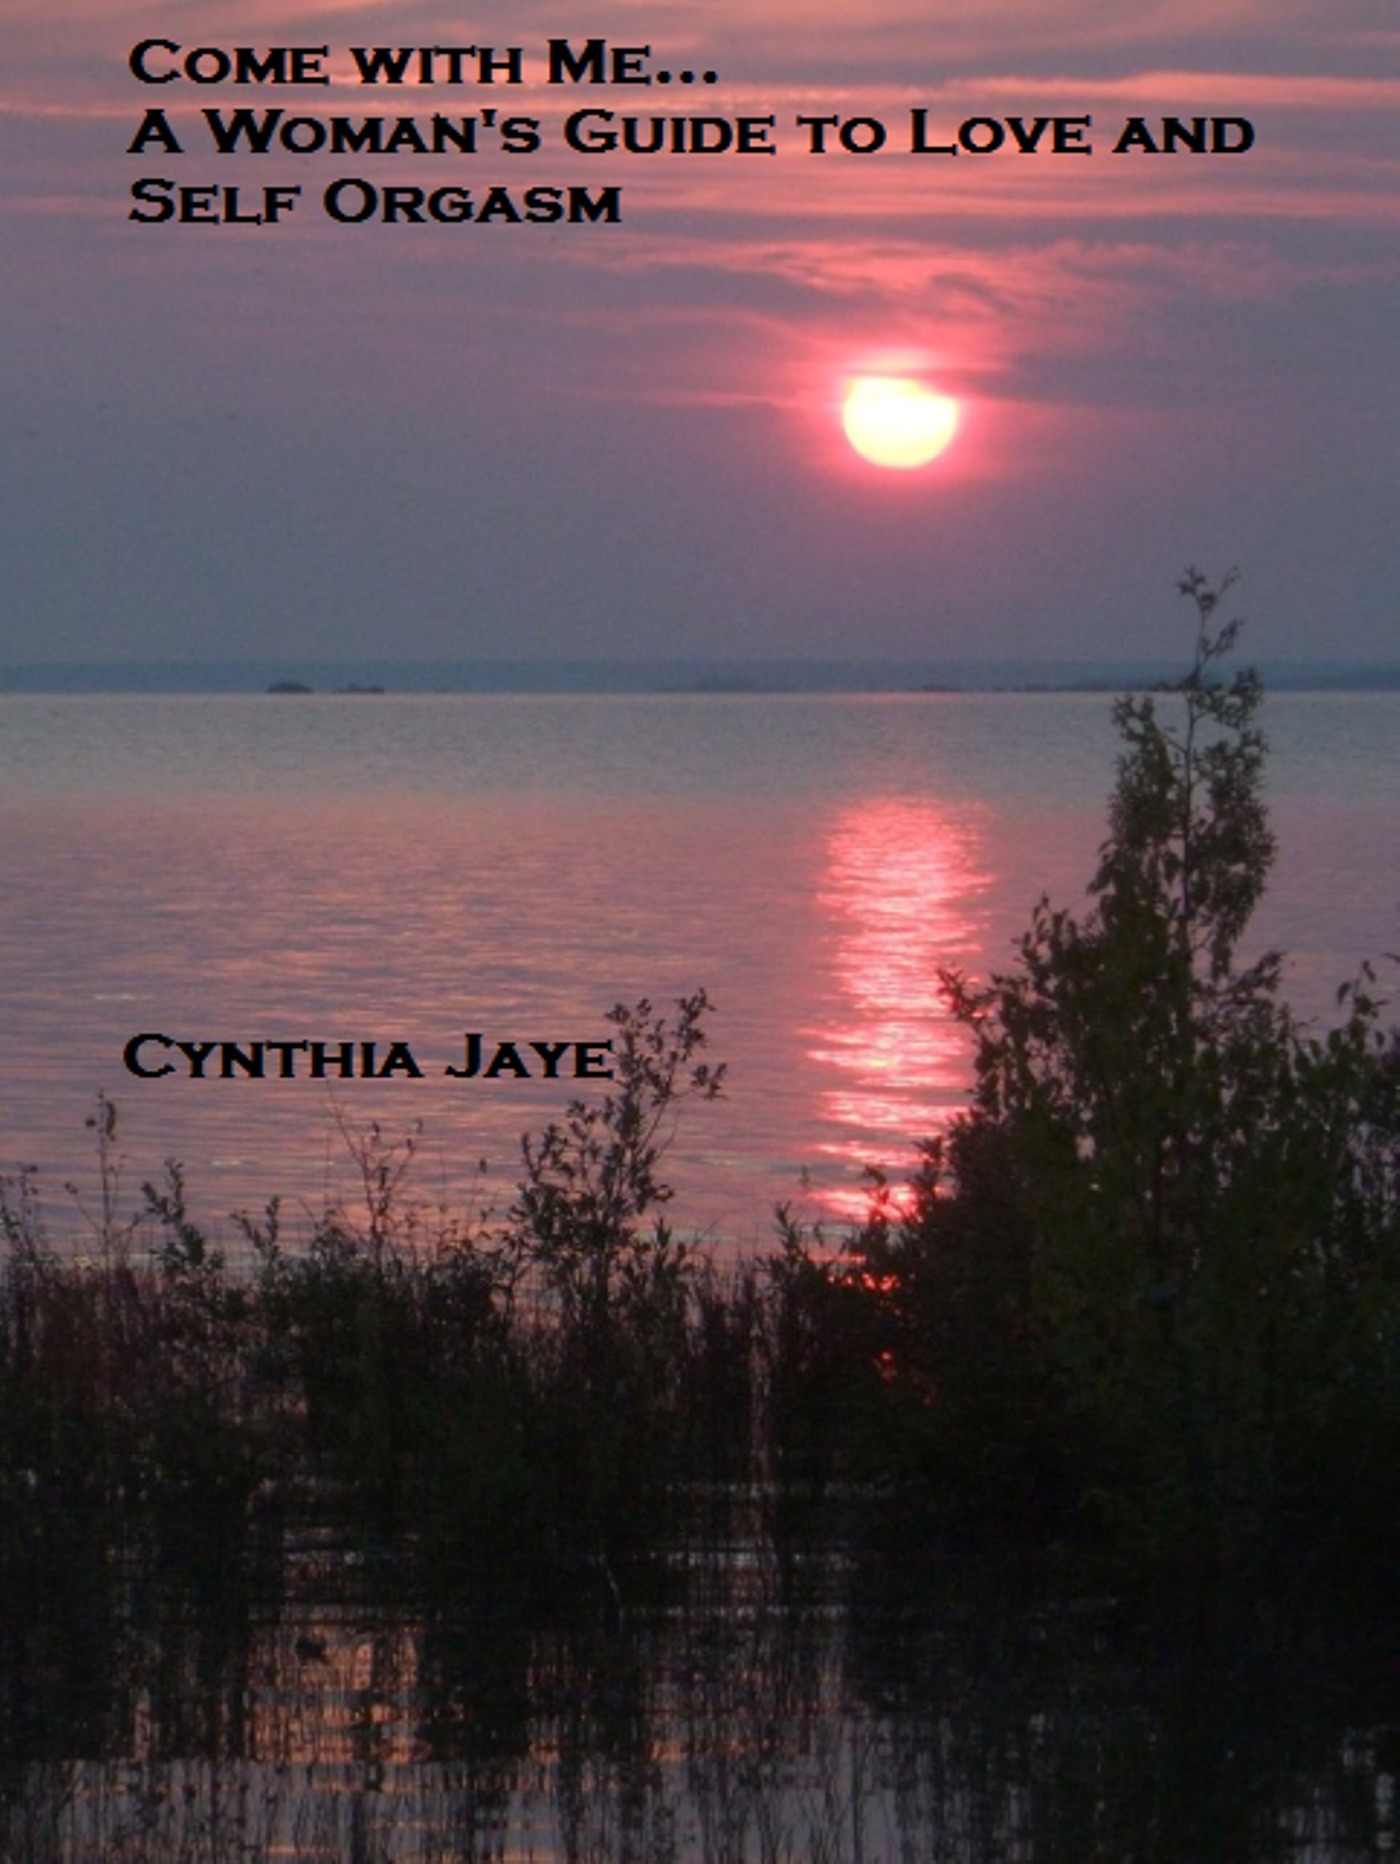 Come With Me, A Womans Guide to Love and Self Orgasm Cynthia Jaye